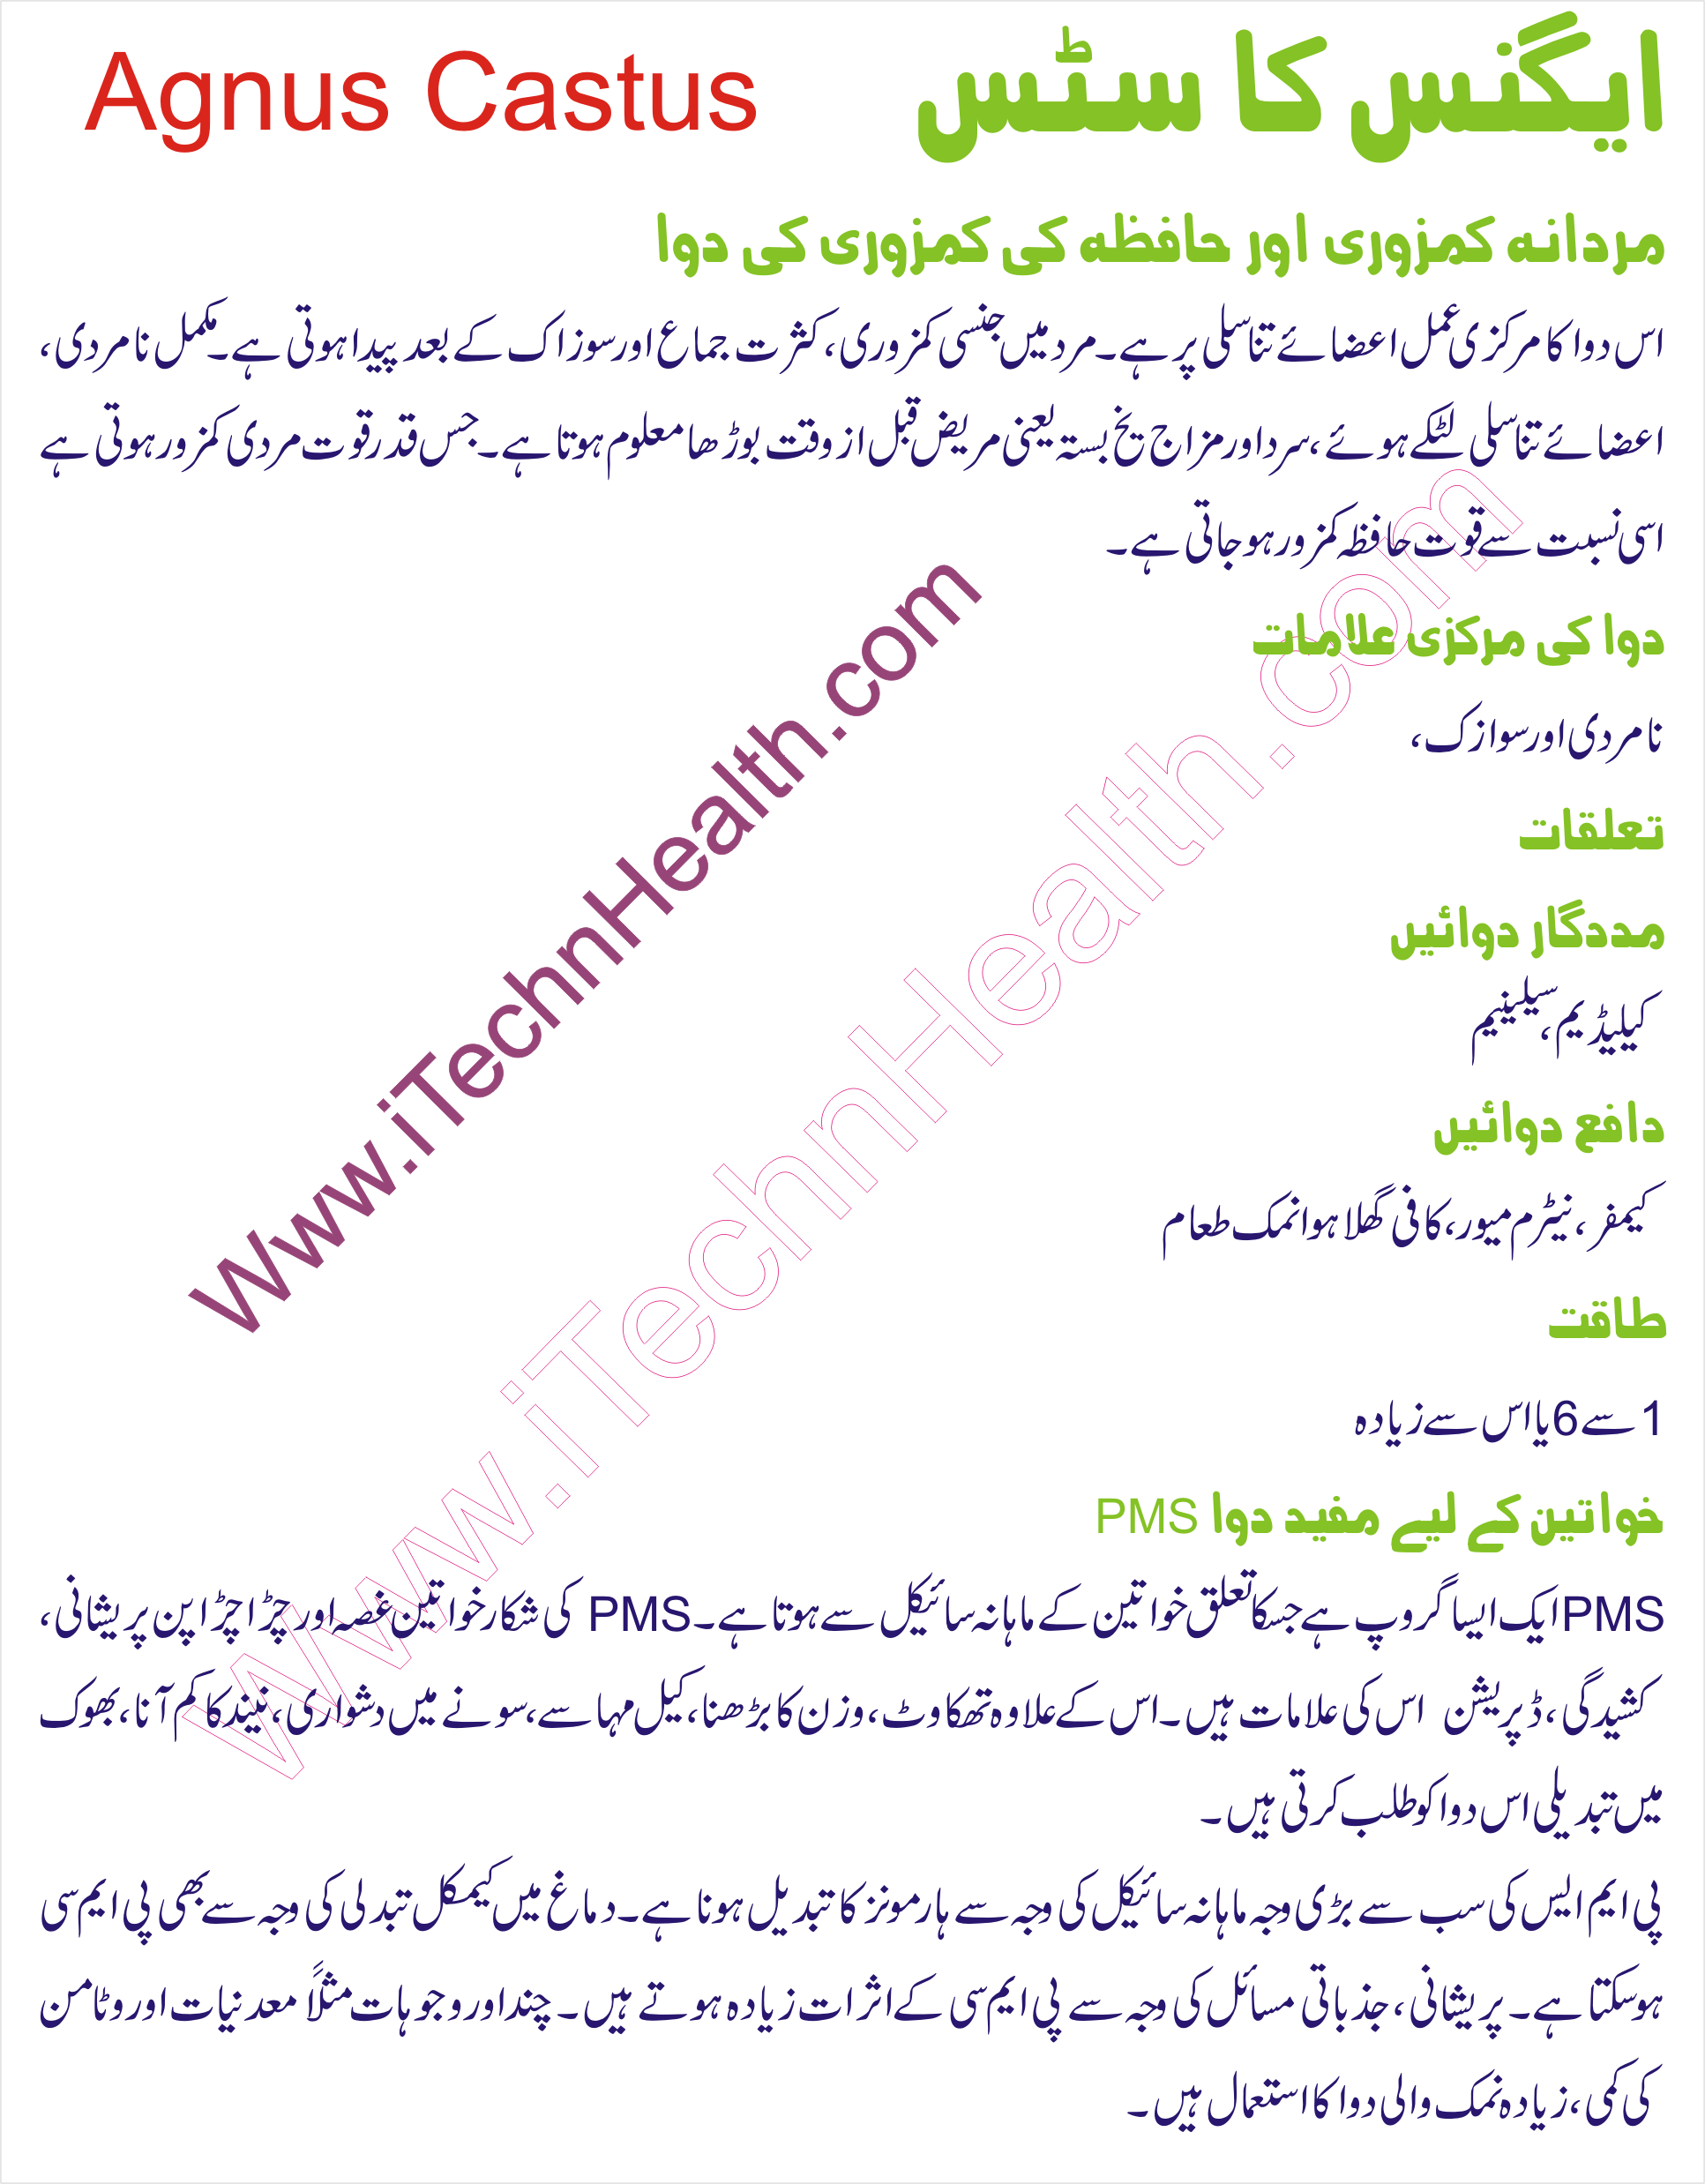 Weight loss tips in urdu font sexual health